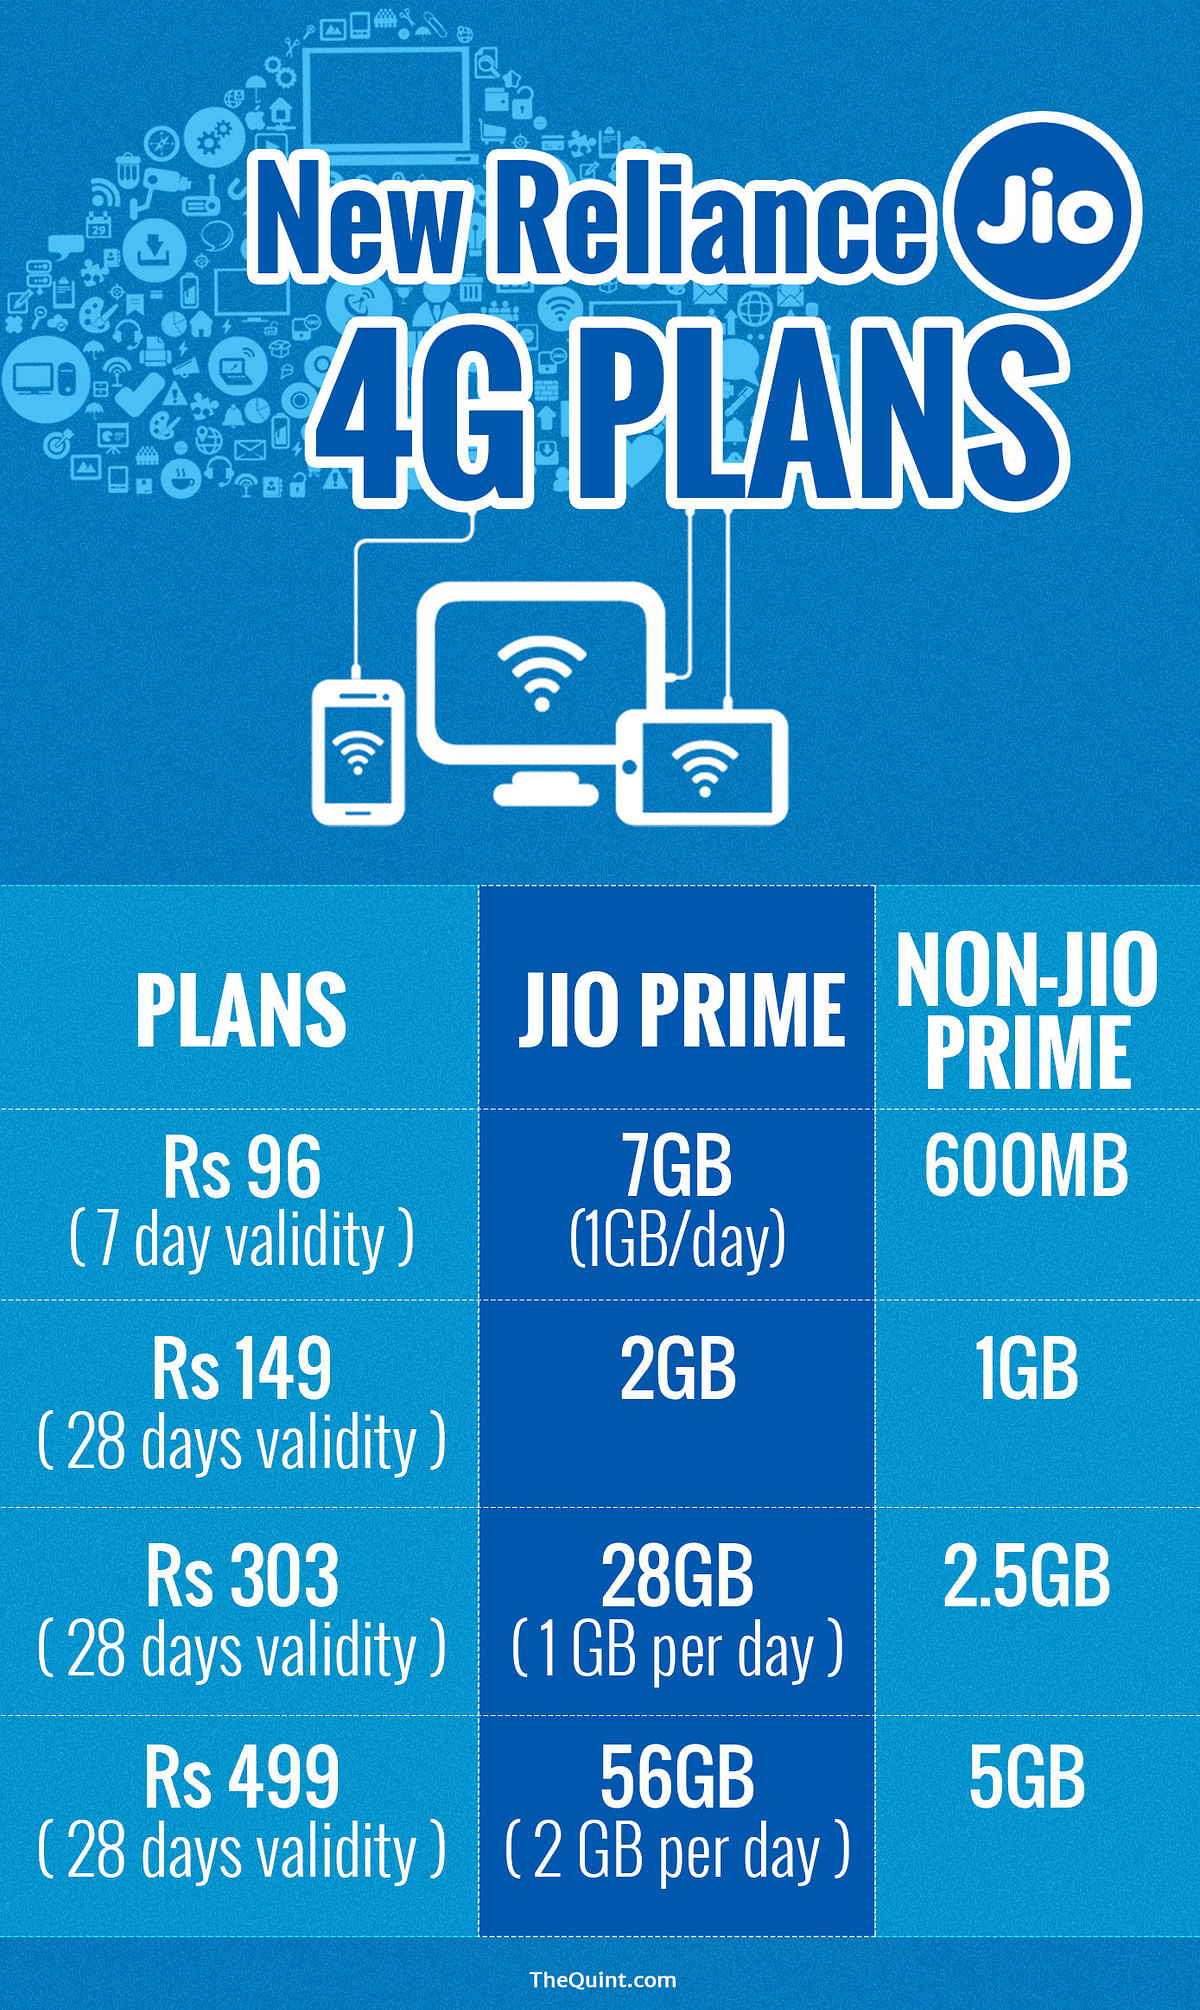 Reliance Jio Post 31 March: Should You Switch to Jio Prime or Not?